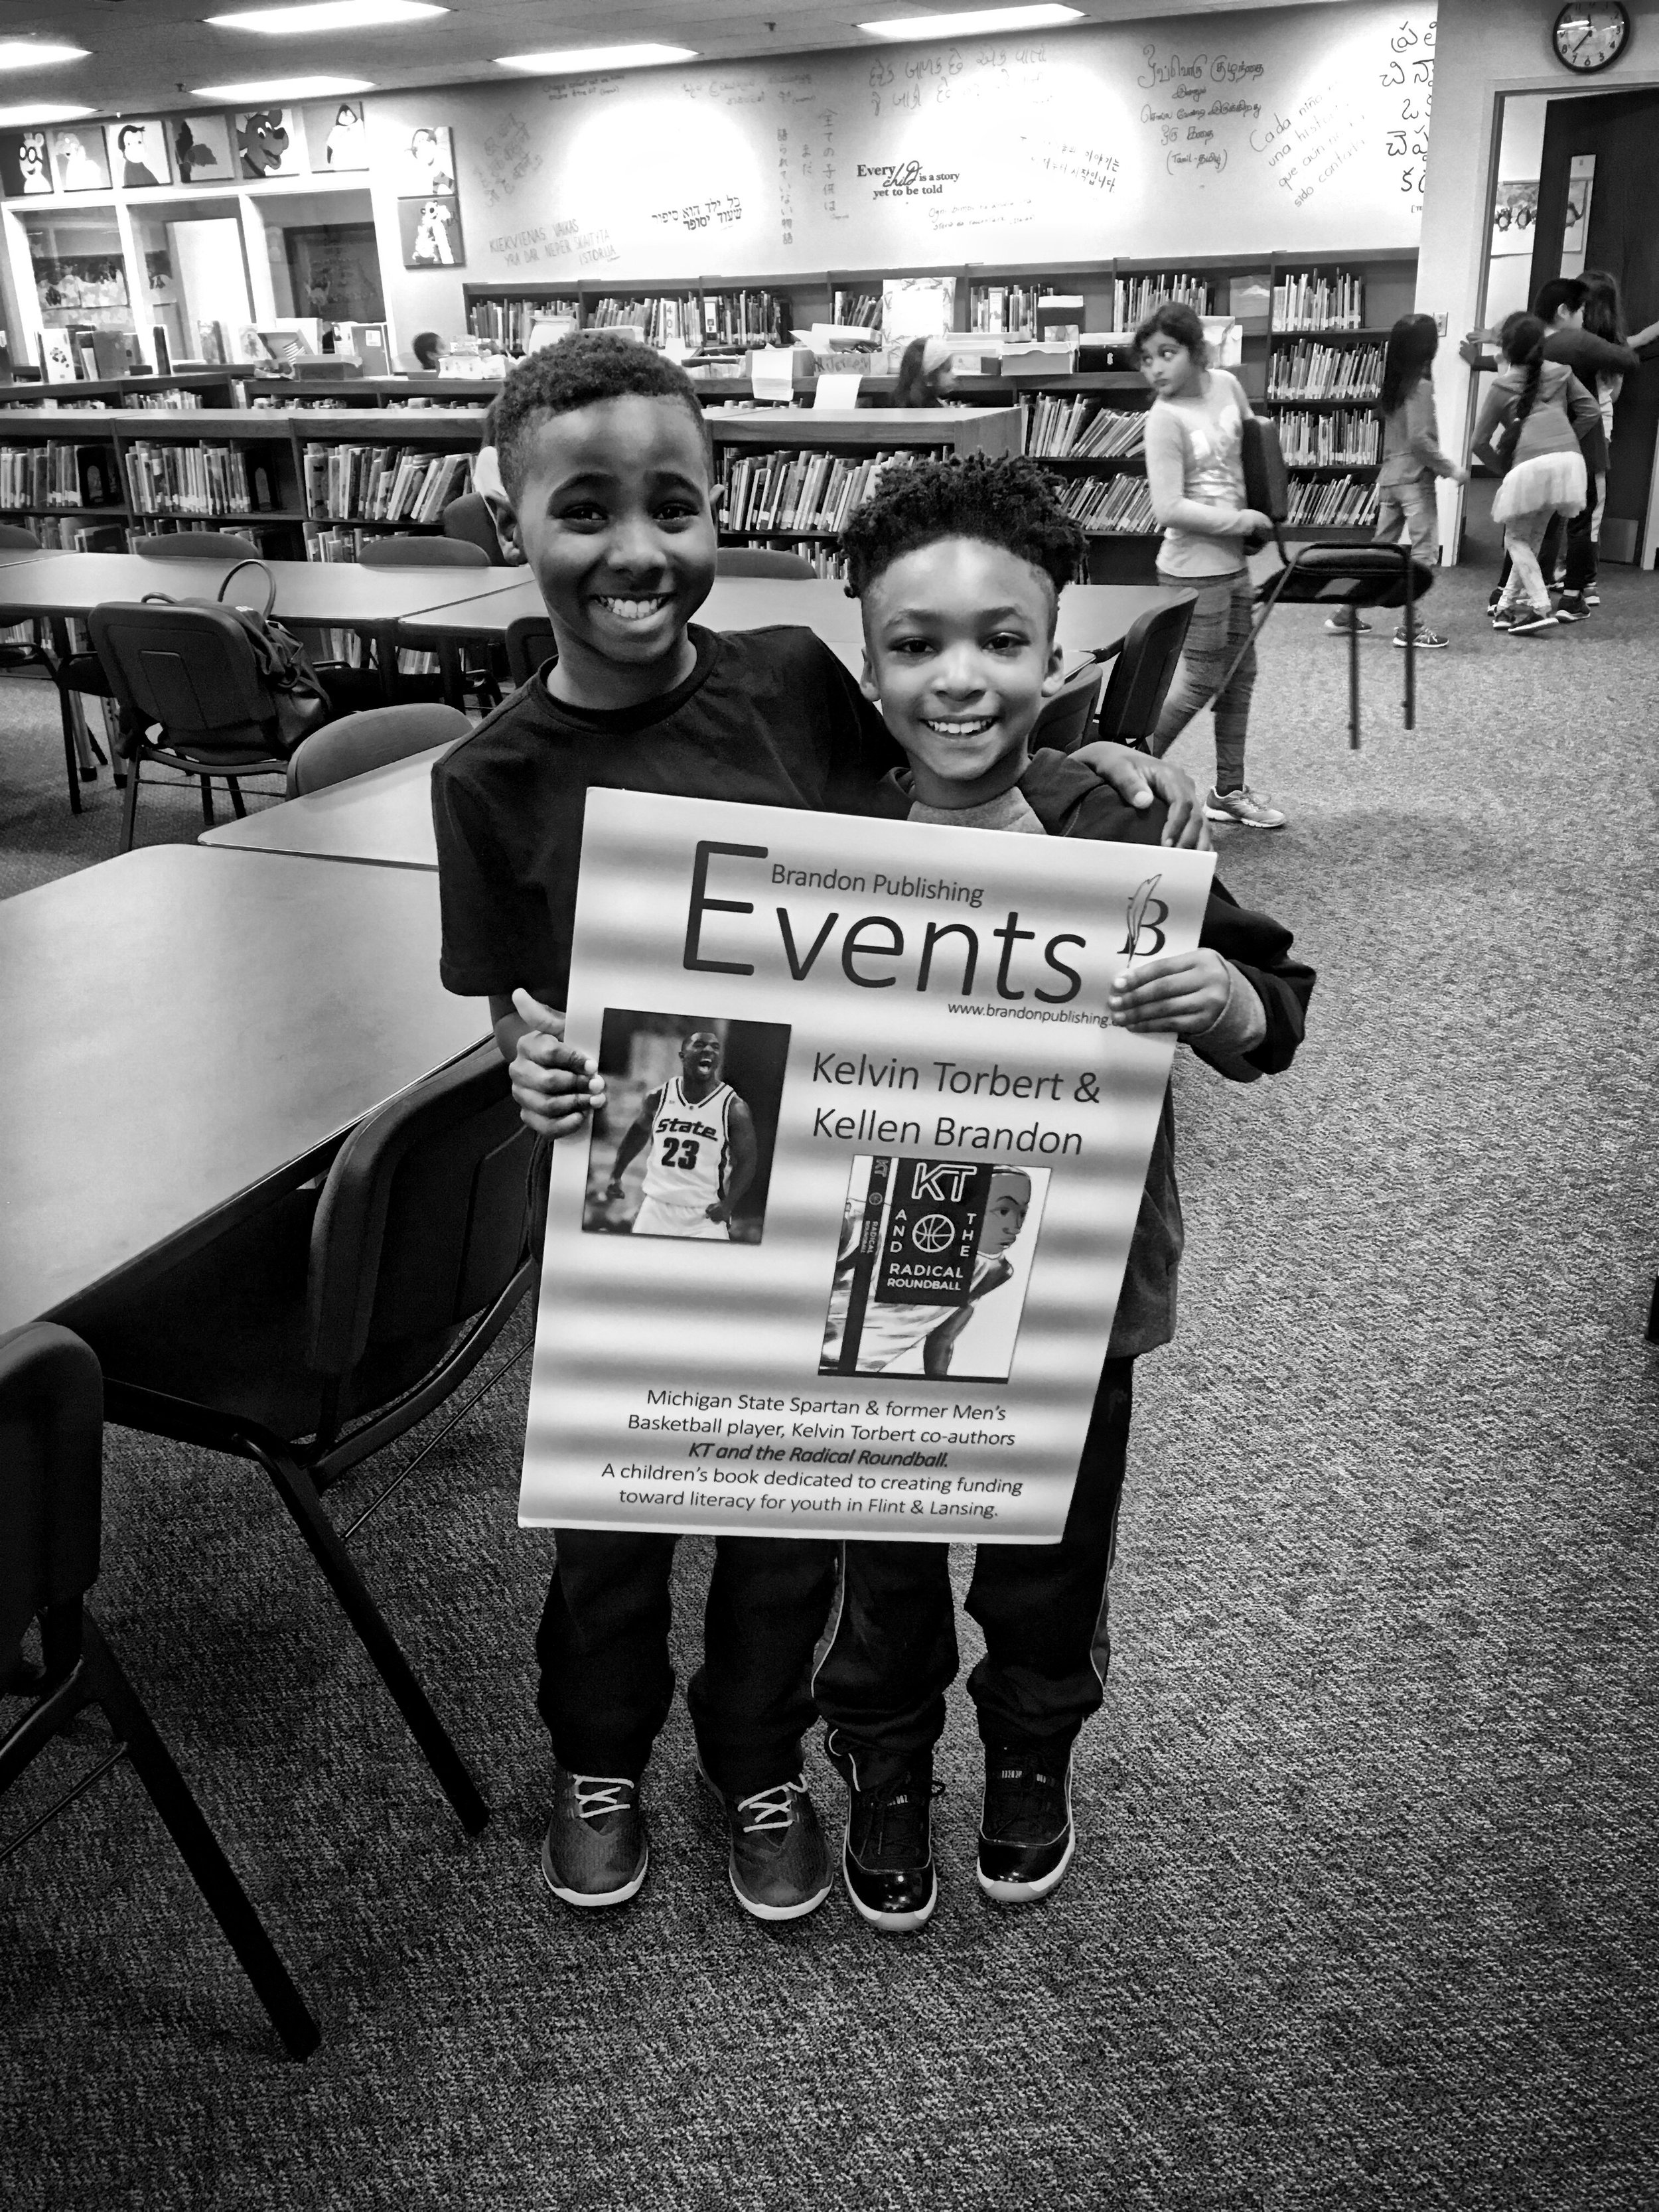 Two students from Hiawatha elementary school in Okemos, Michigan celebrate their reading moment with Author's  Kellen Brandon  and Kelvin Torbert. Students really loved the book KT & The Radical Roundball.